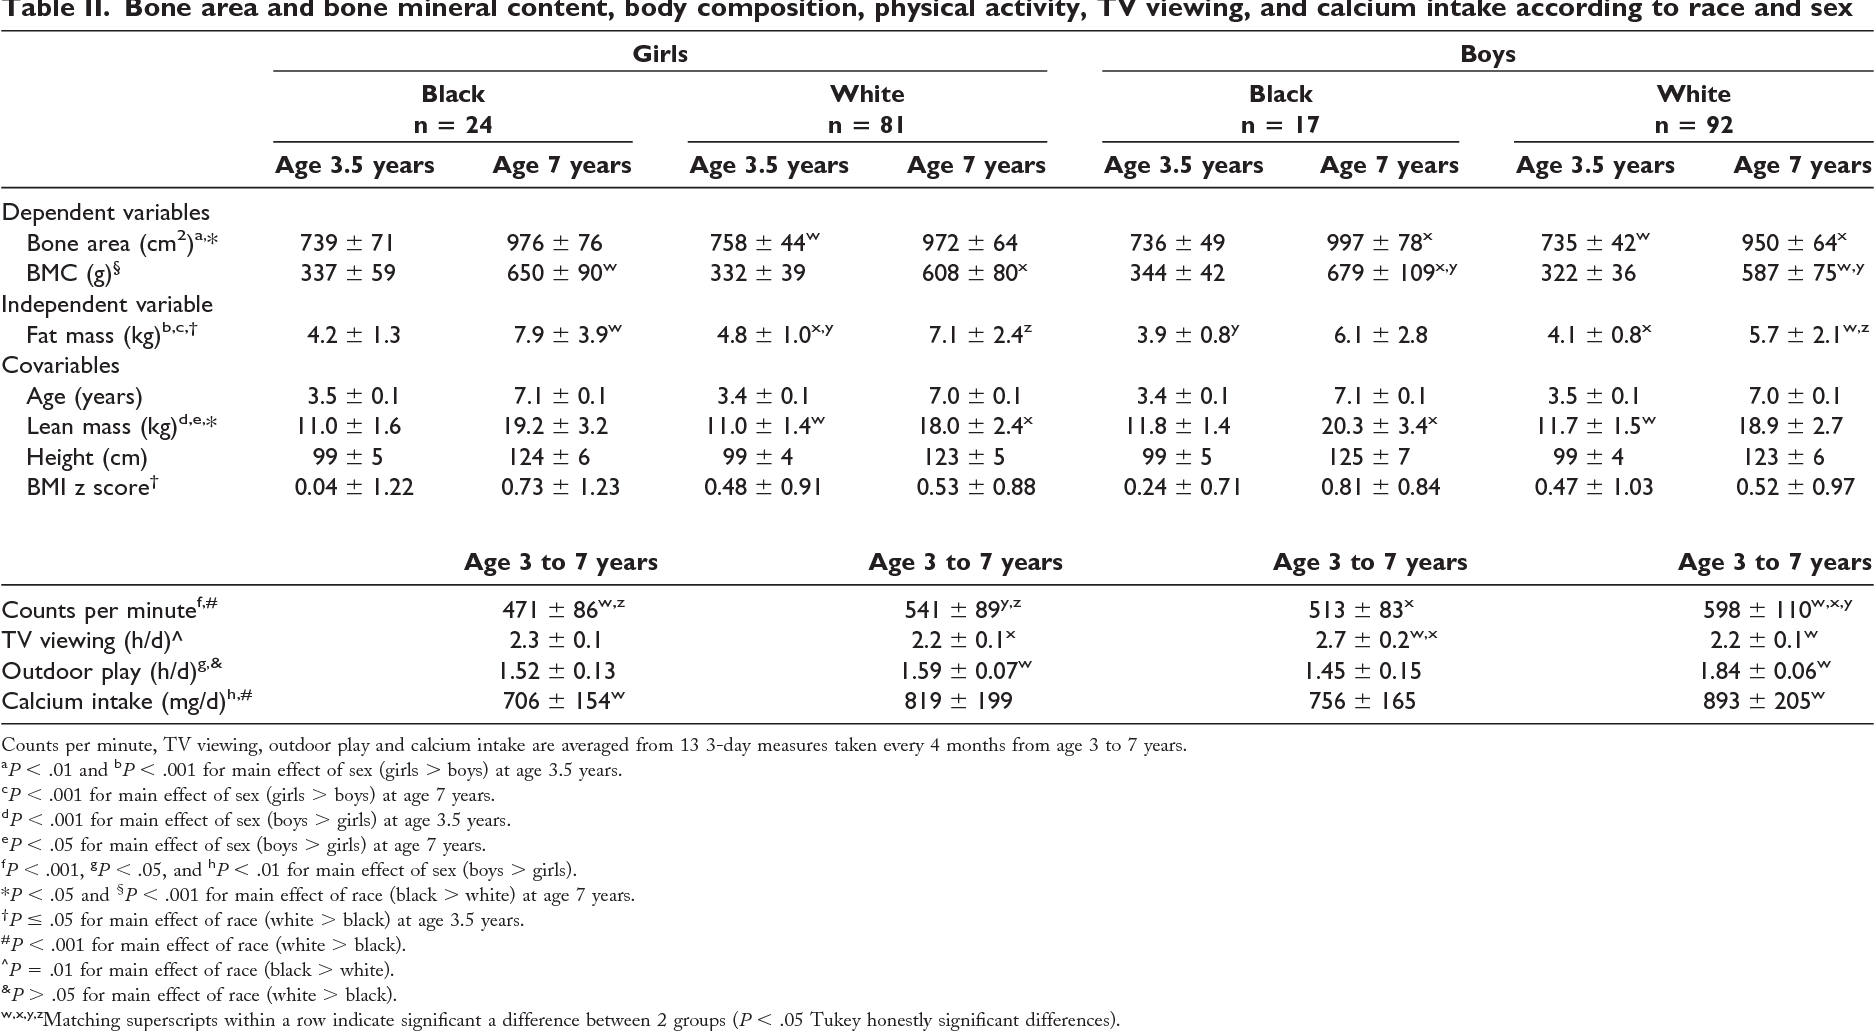 Table II. Bone area and bone mineral content, body composition, physical activity, TV viewing, and calcium intake according to race and sex